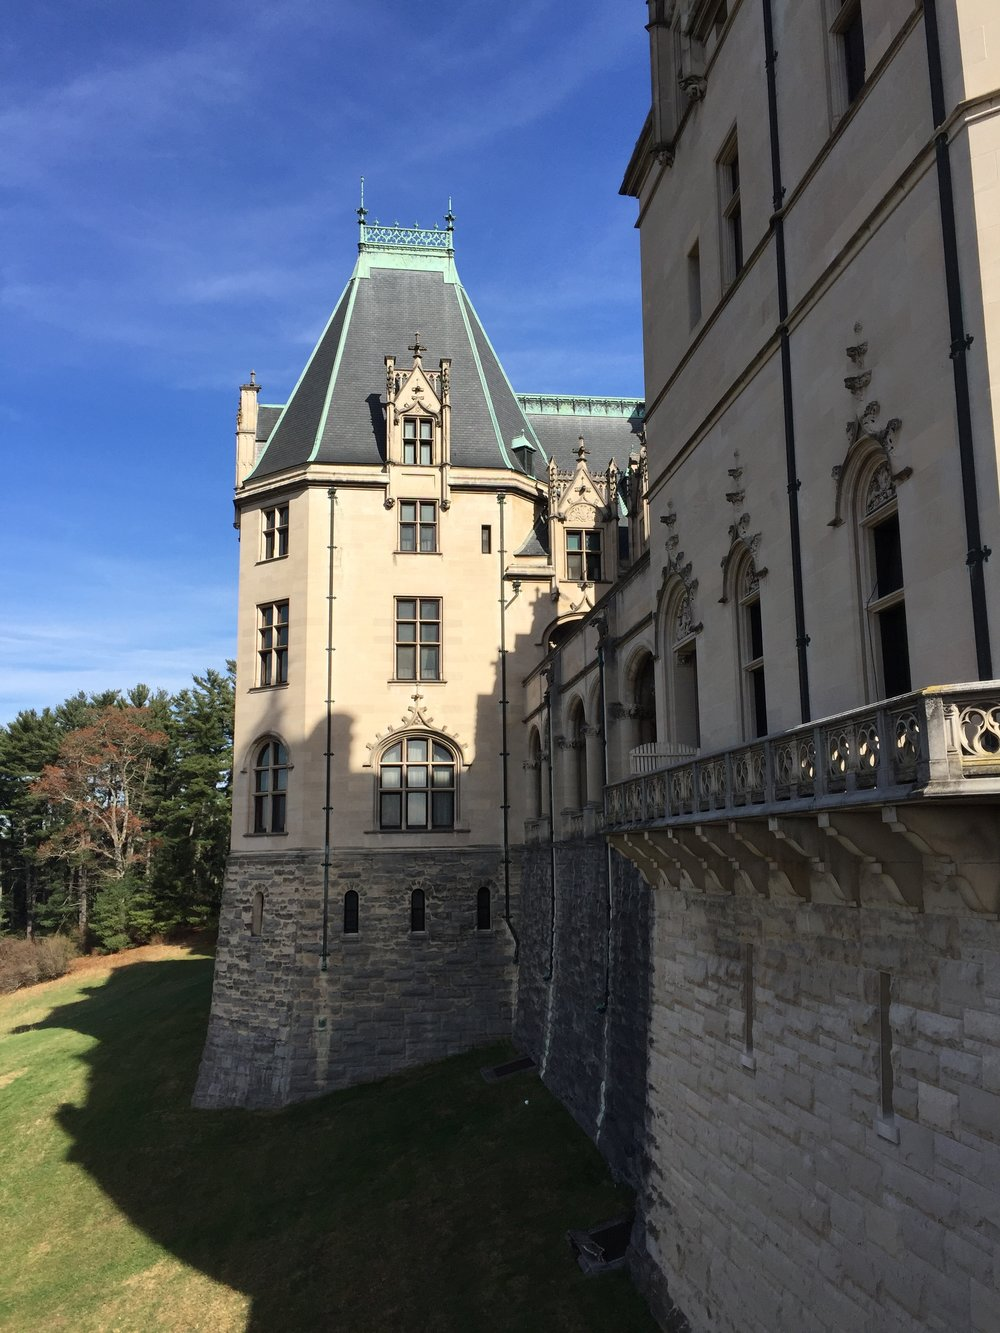 View of Biltmore House from the adjacent terrace.